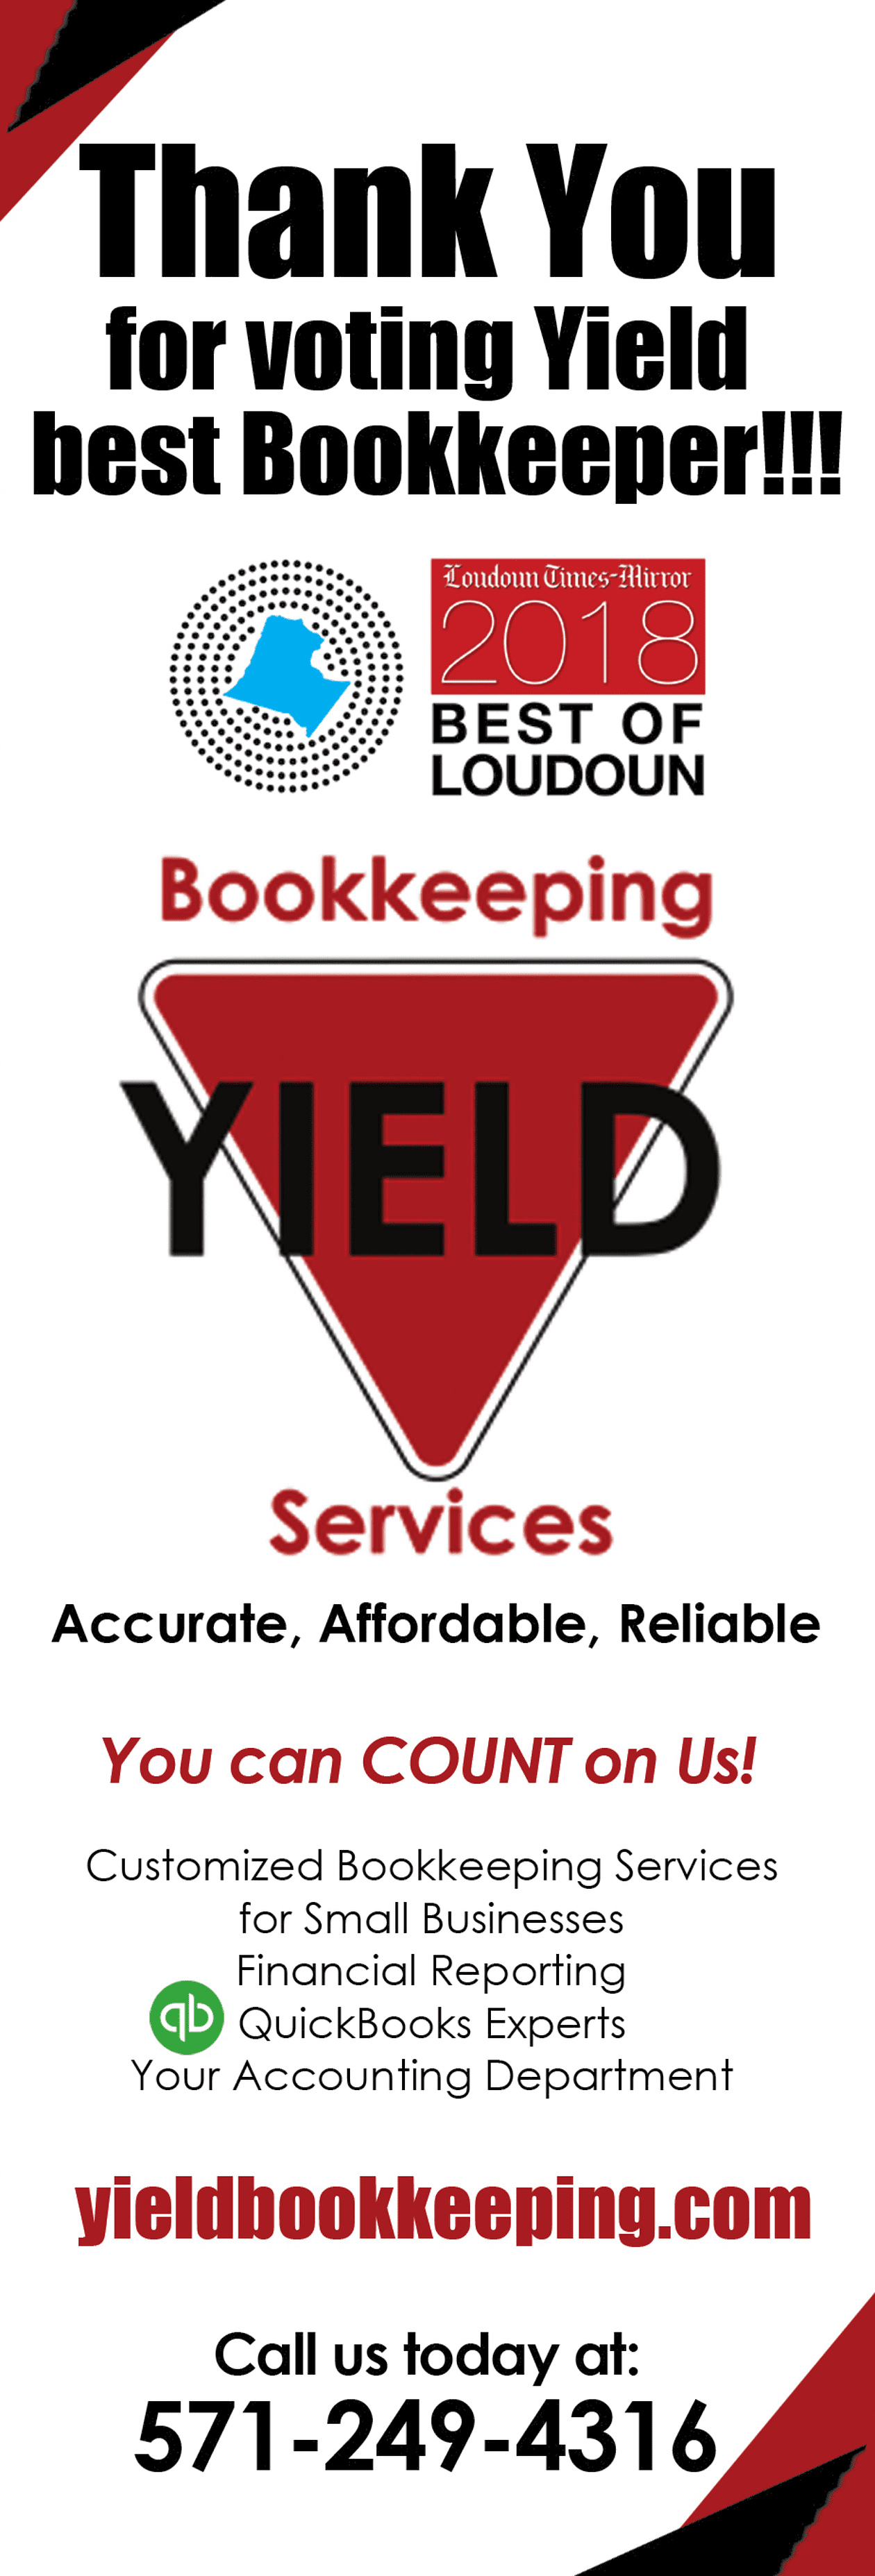 Best-Bookkeeping-Firm-in-Loudoun